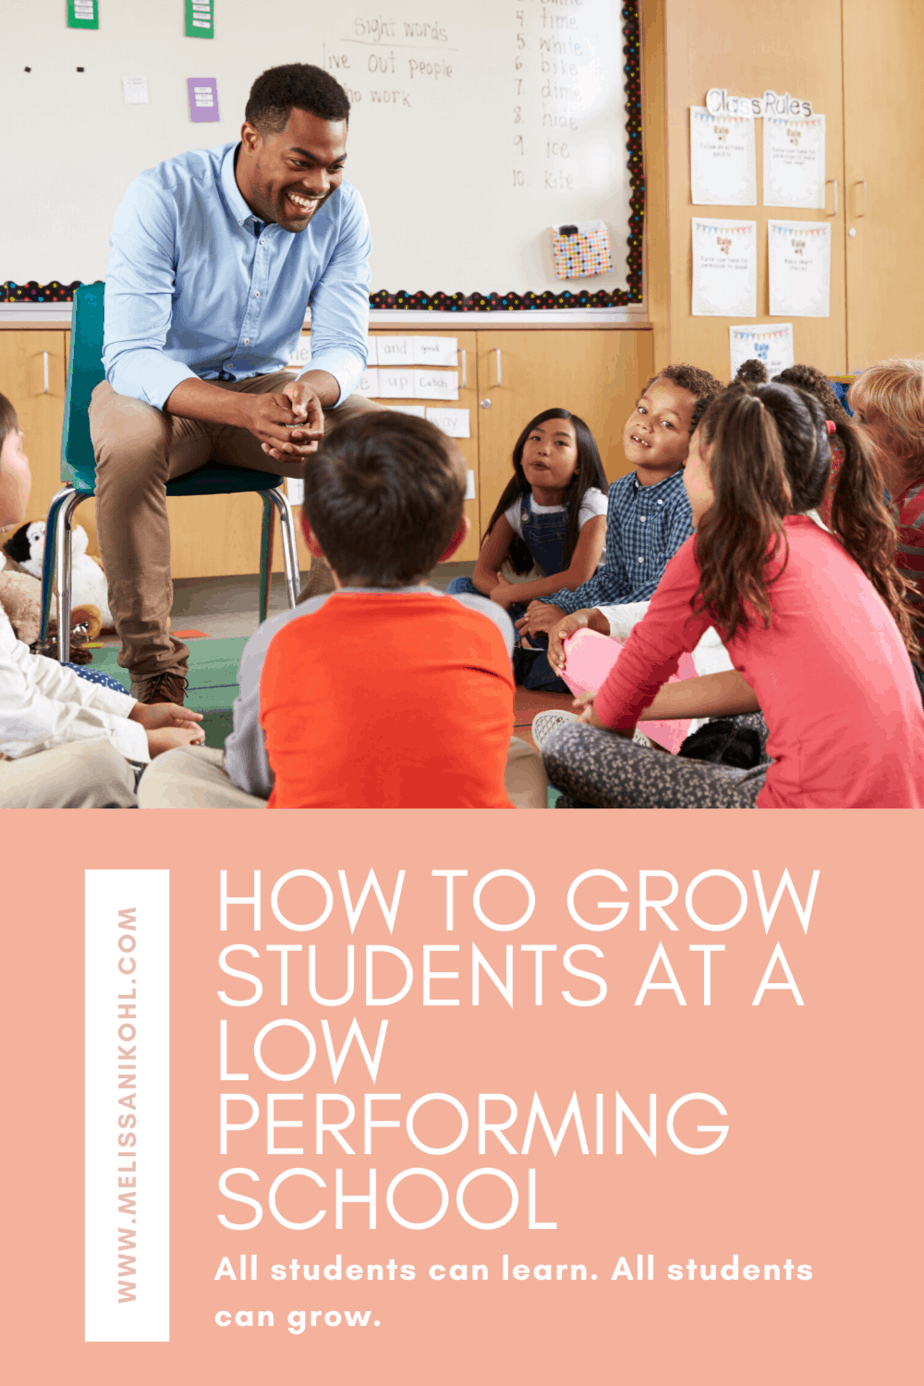 Student growth is possible with all students. Even at campuses that are struggling. Find out how to help students grow at a school that isn't doing so well. Remember, all students can learn. #studentgrowth #differentiation